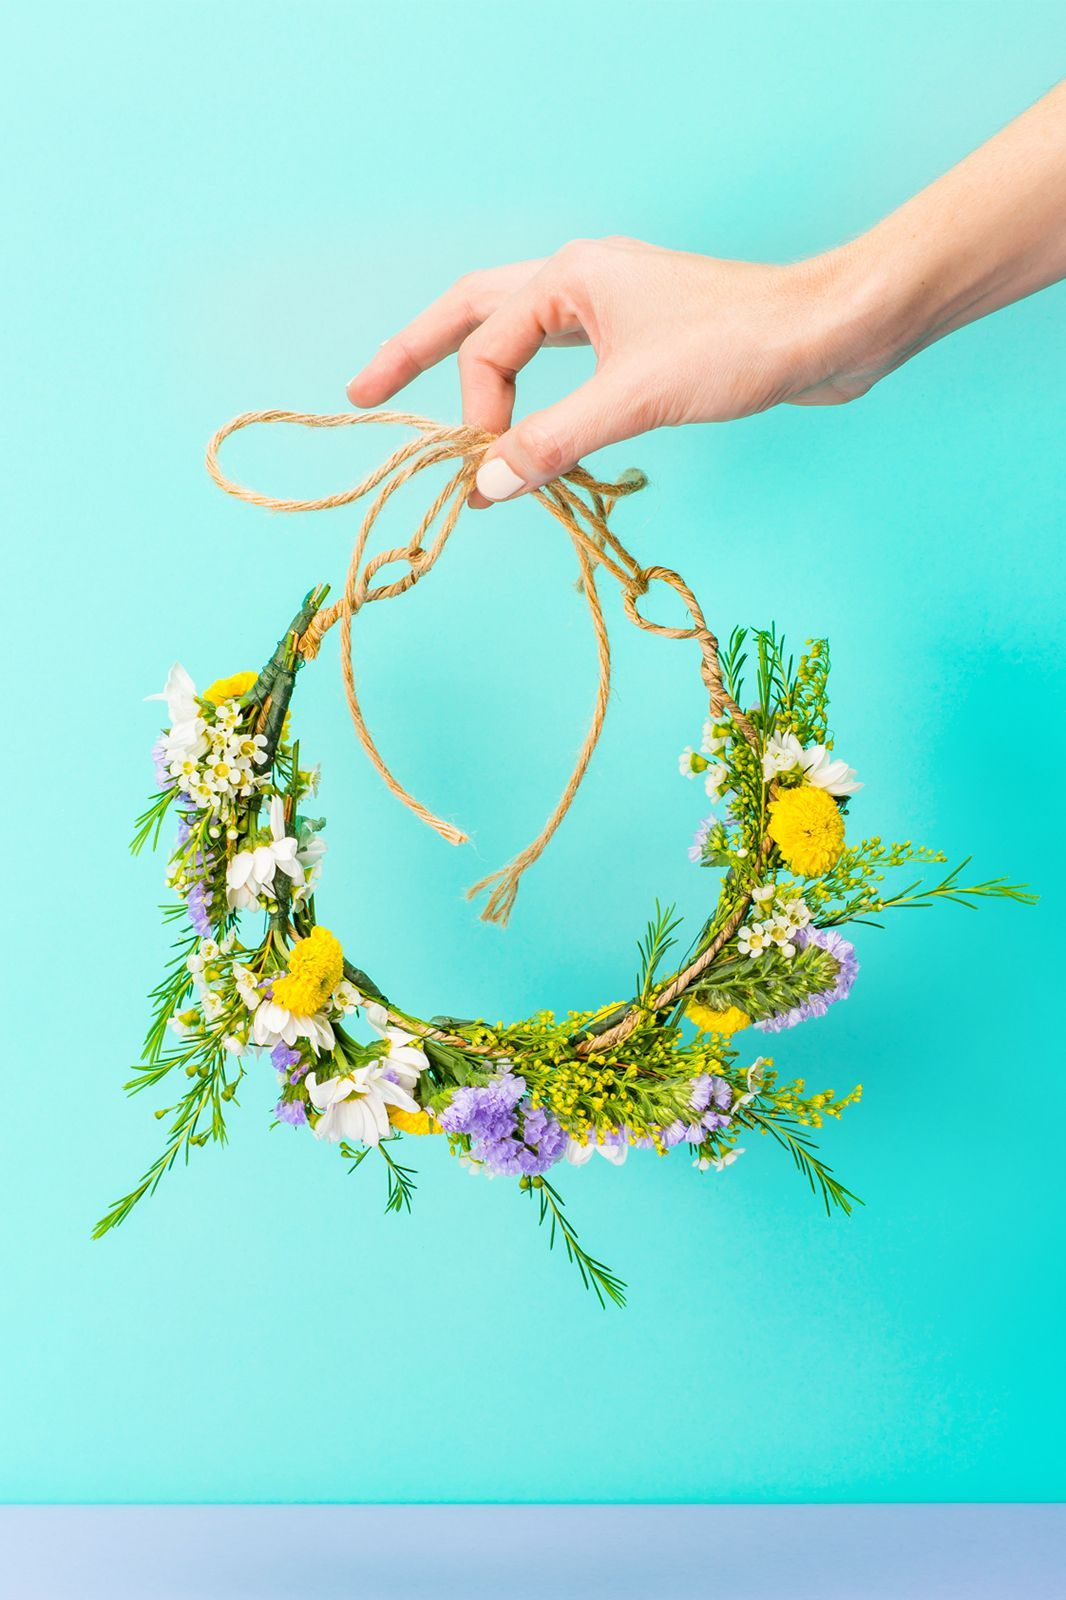 How to make a stunning flower crown in under 20 minutes out of the this is the easiest diy flower crown ever refinery29 httprefinery29how to make a flower crownslide 15 step 15 admire your workcause izmirmasajfo